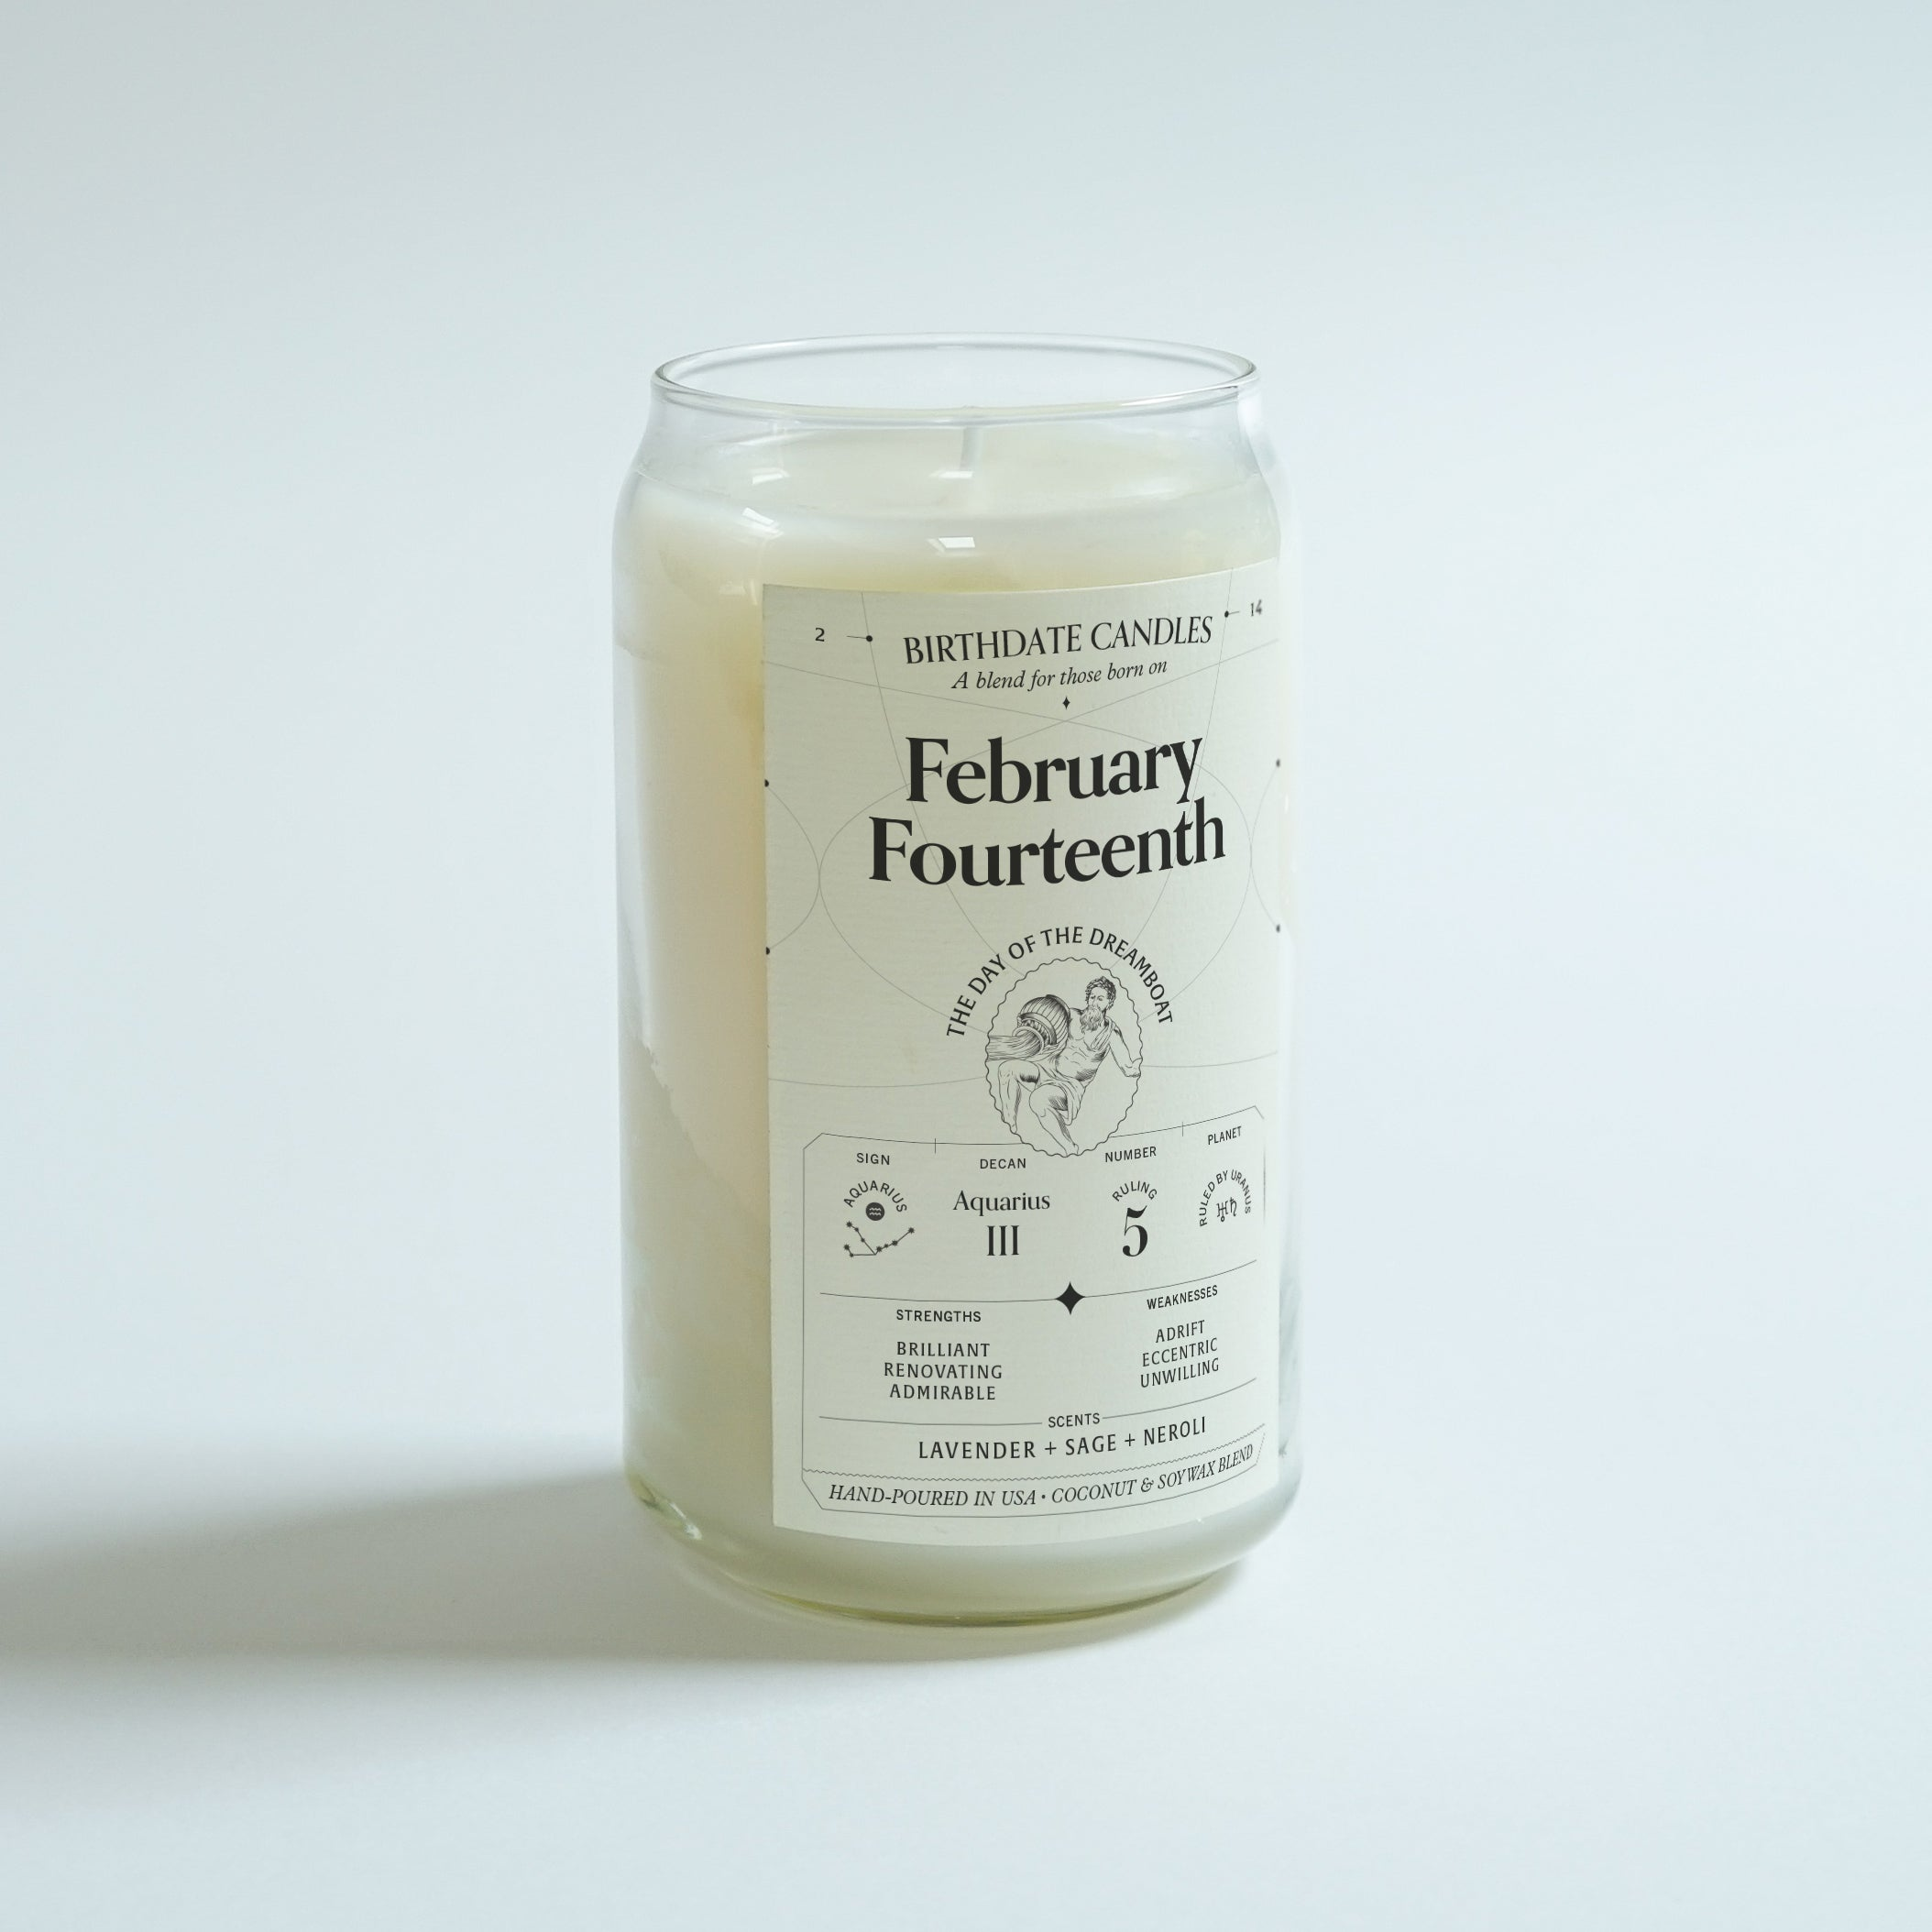 The February Fourteenth Candle